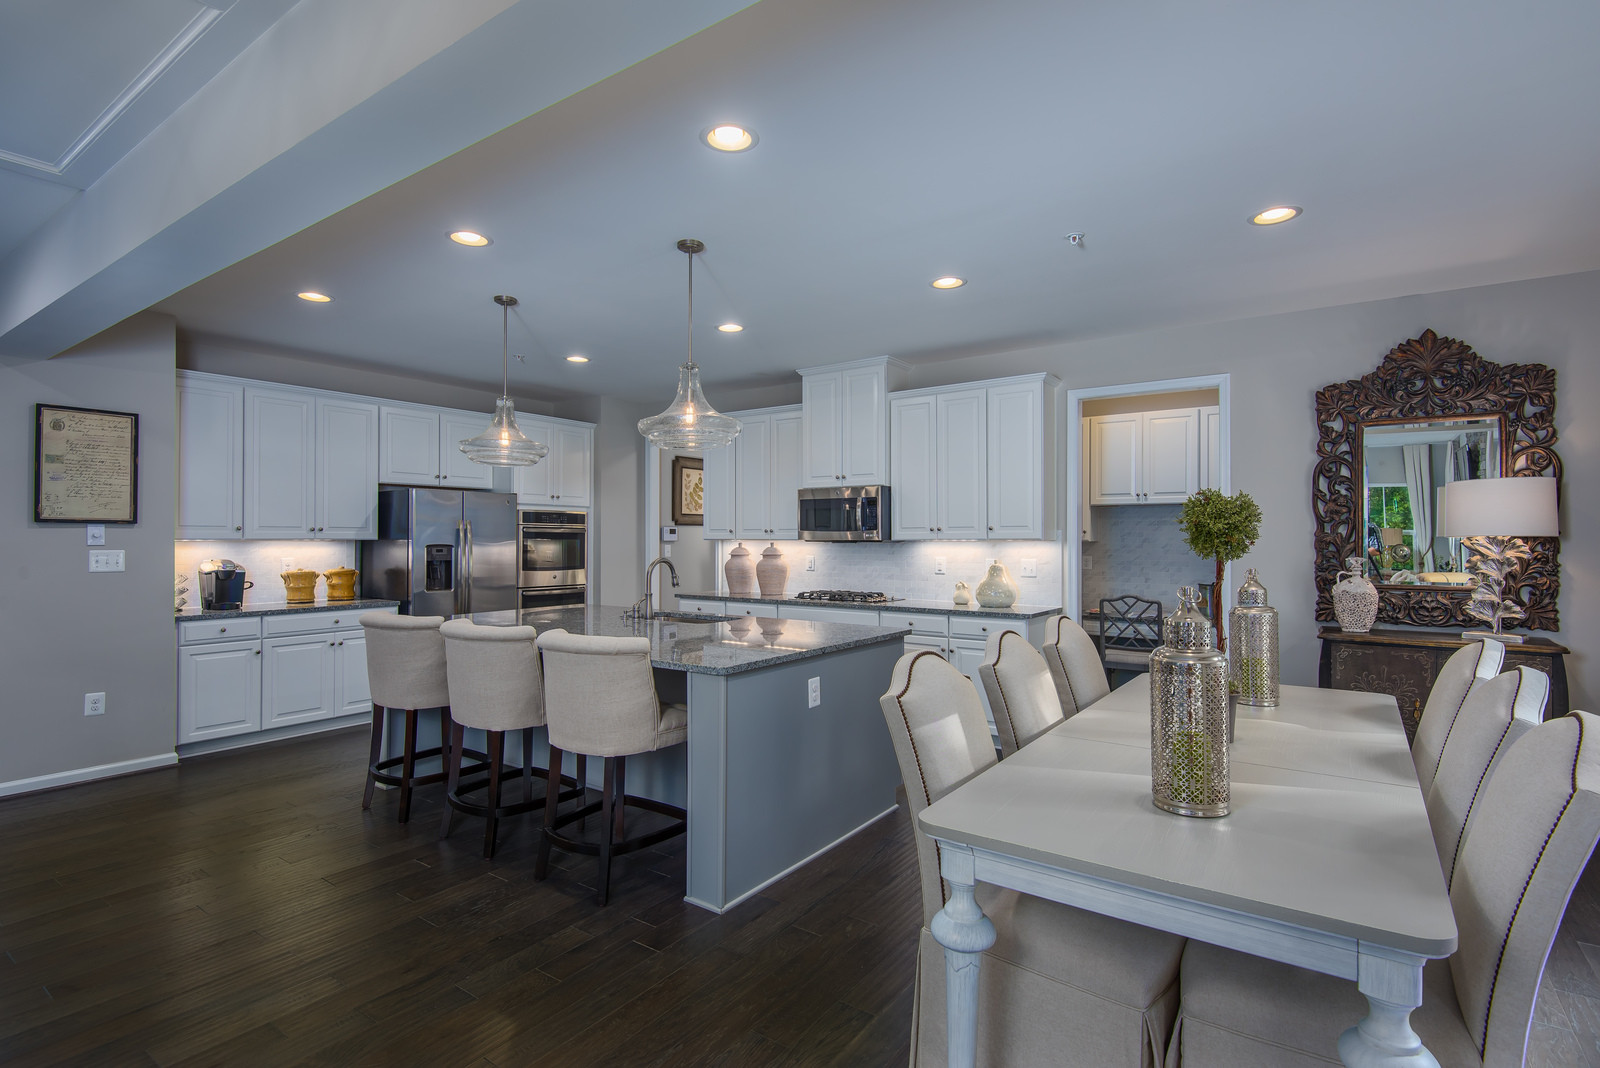 New Courtlandgate Home Model for sale at Cannon Hill in Upper ... on ryan homes courtland gate basement, ryan homes courtland gate model, ryan homes ranch floor plans,